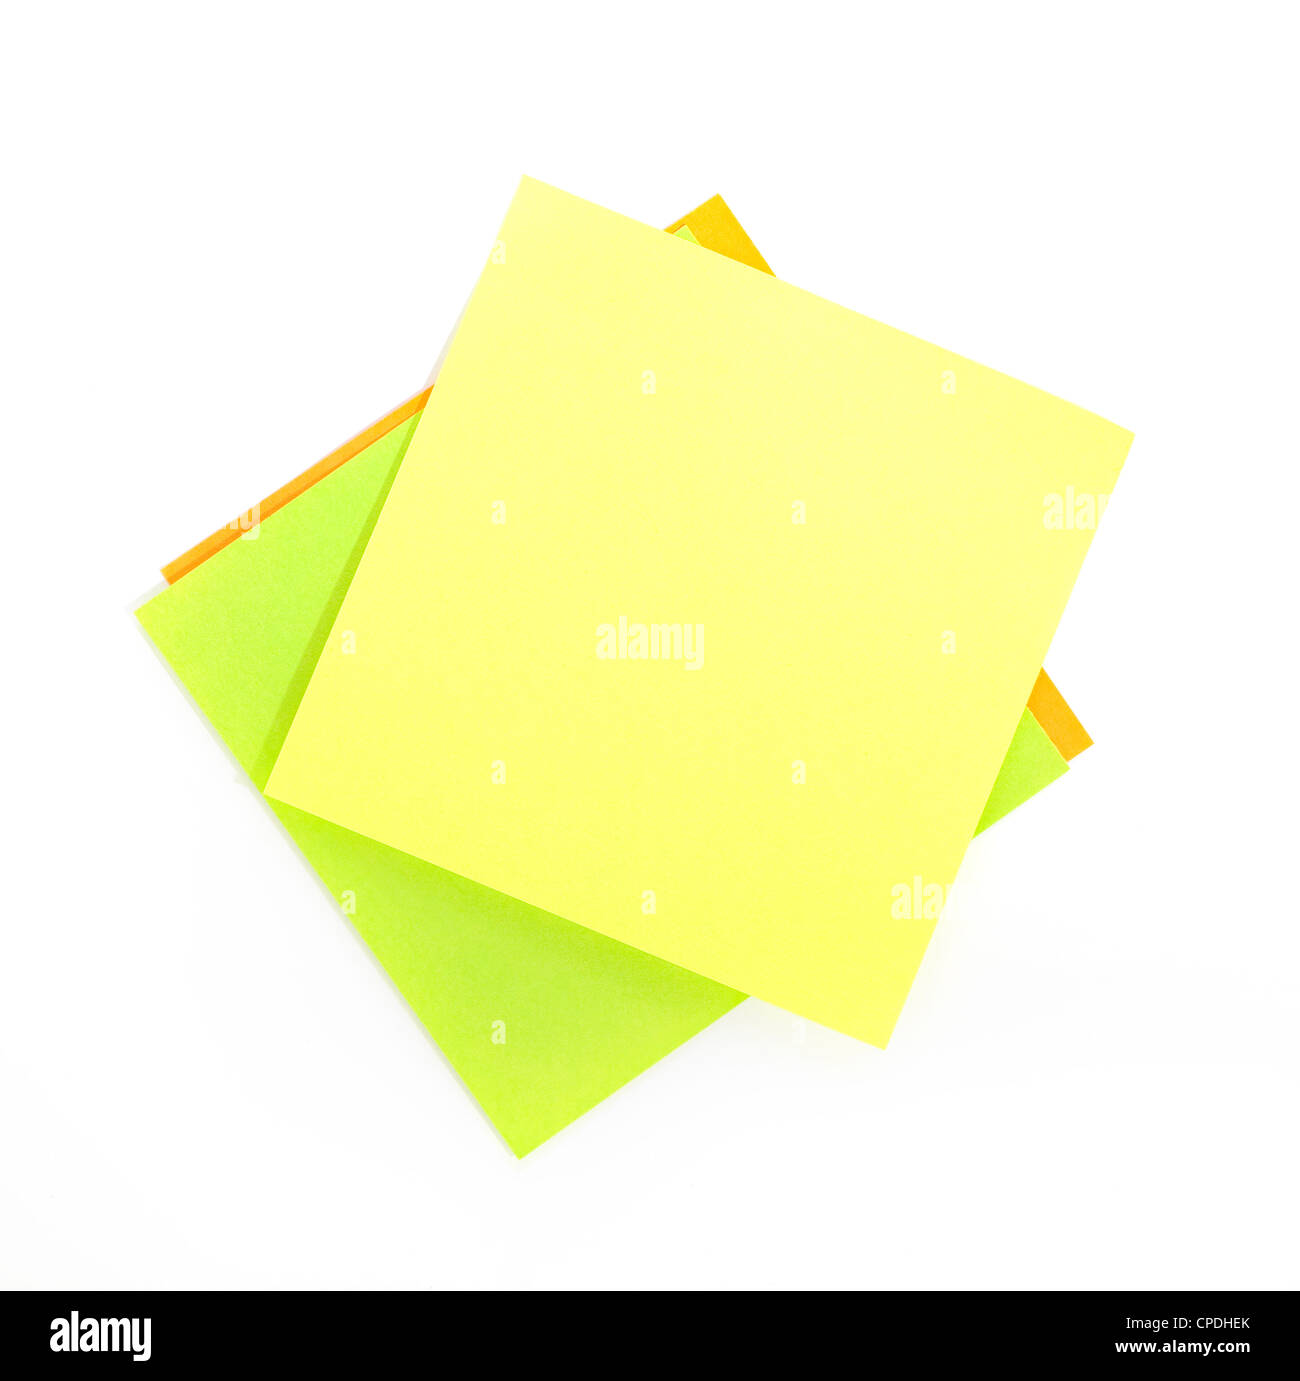 Post it for reminder note on the white background - Stock Image